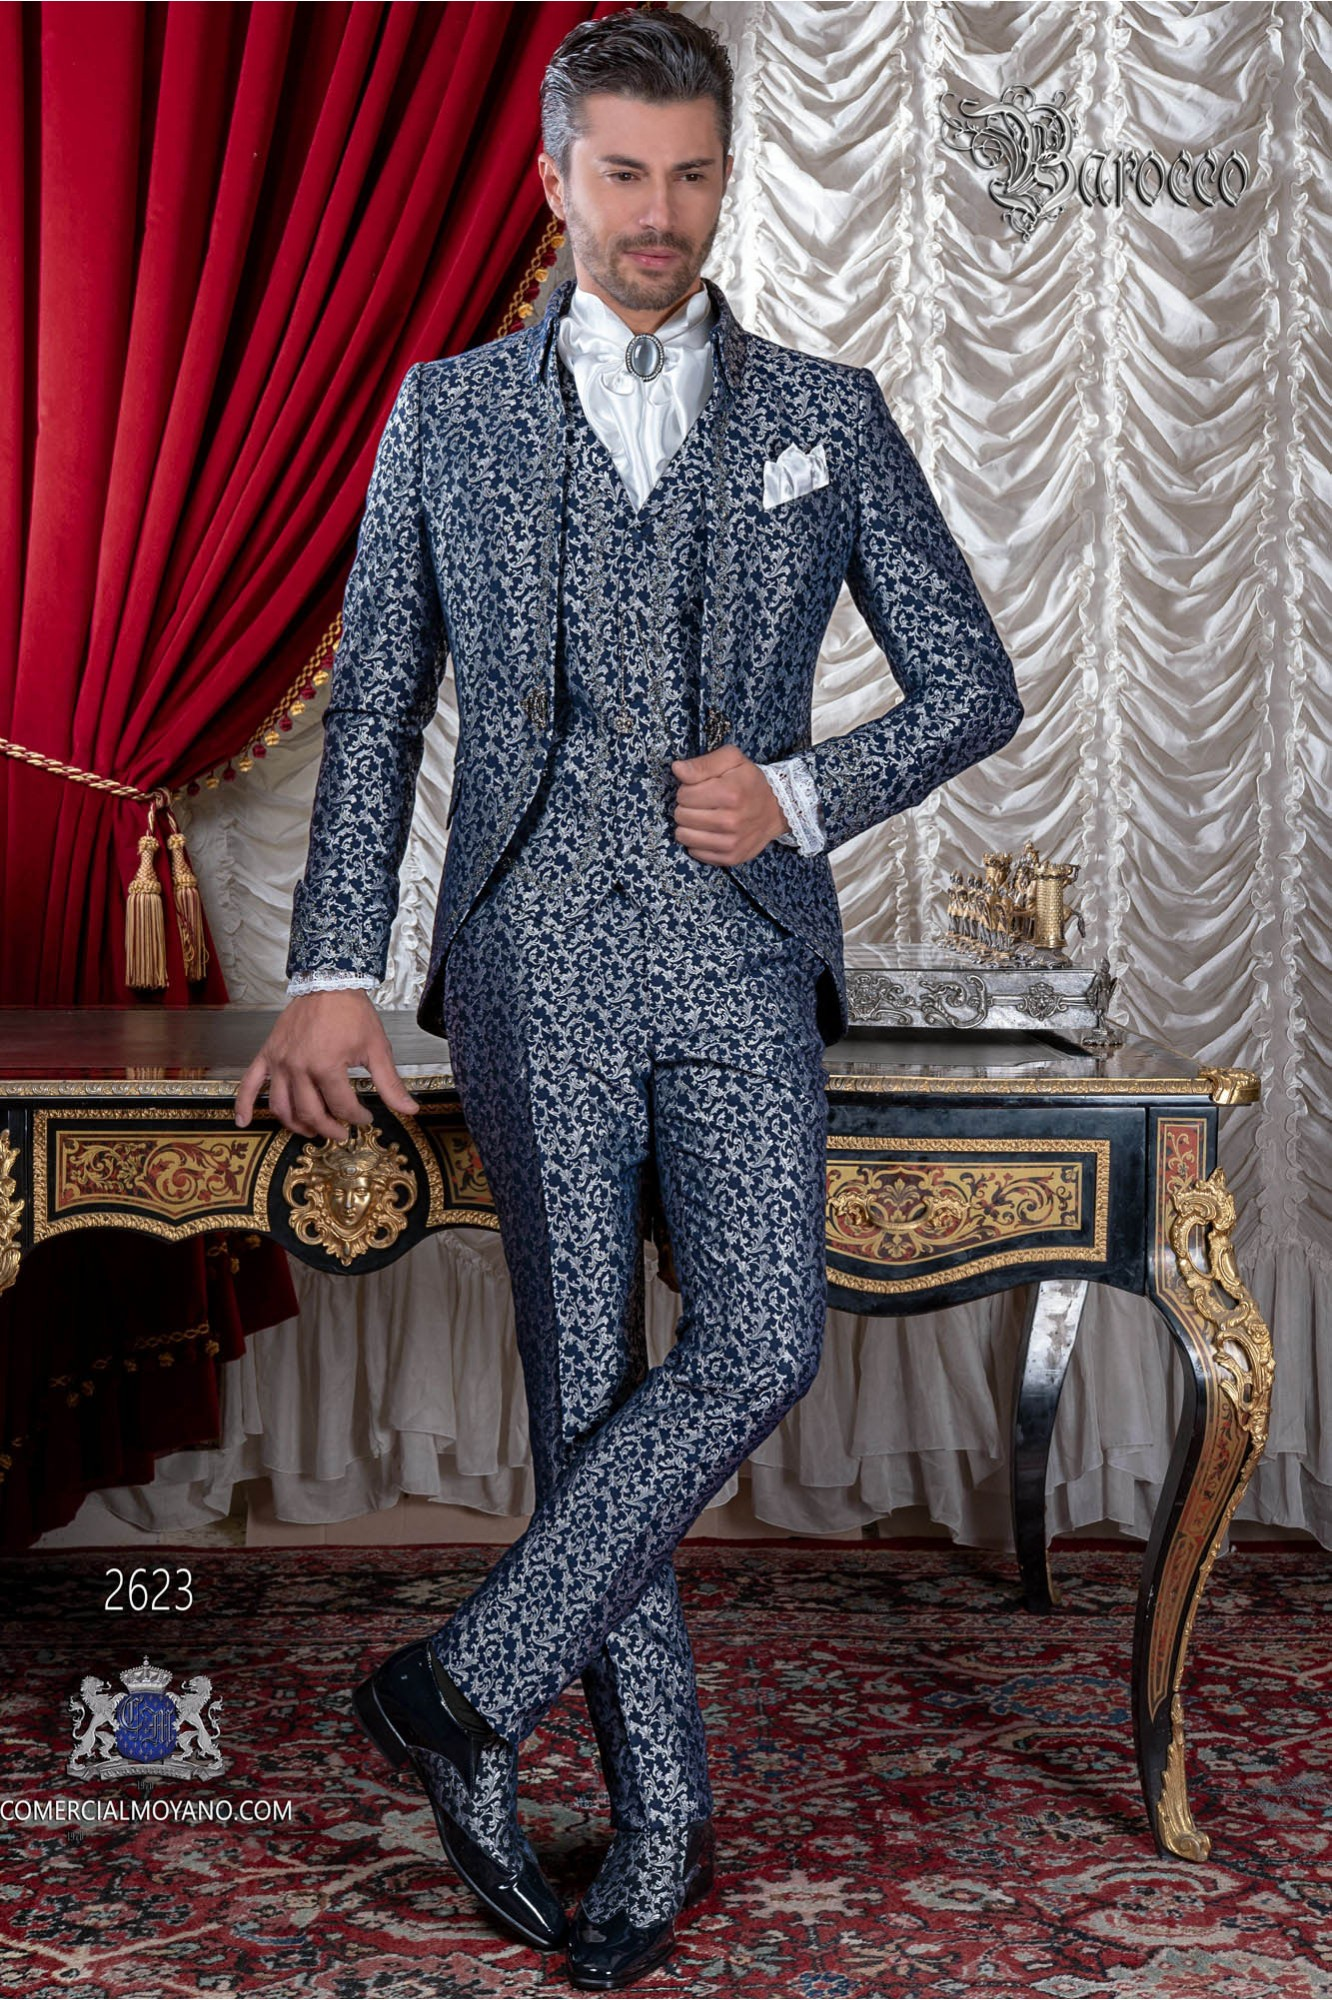 Baroque groom suit, vintage Napoleon collar frock coat in blue and silver jacquard fabric with silver embroidery